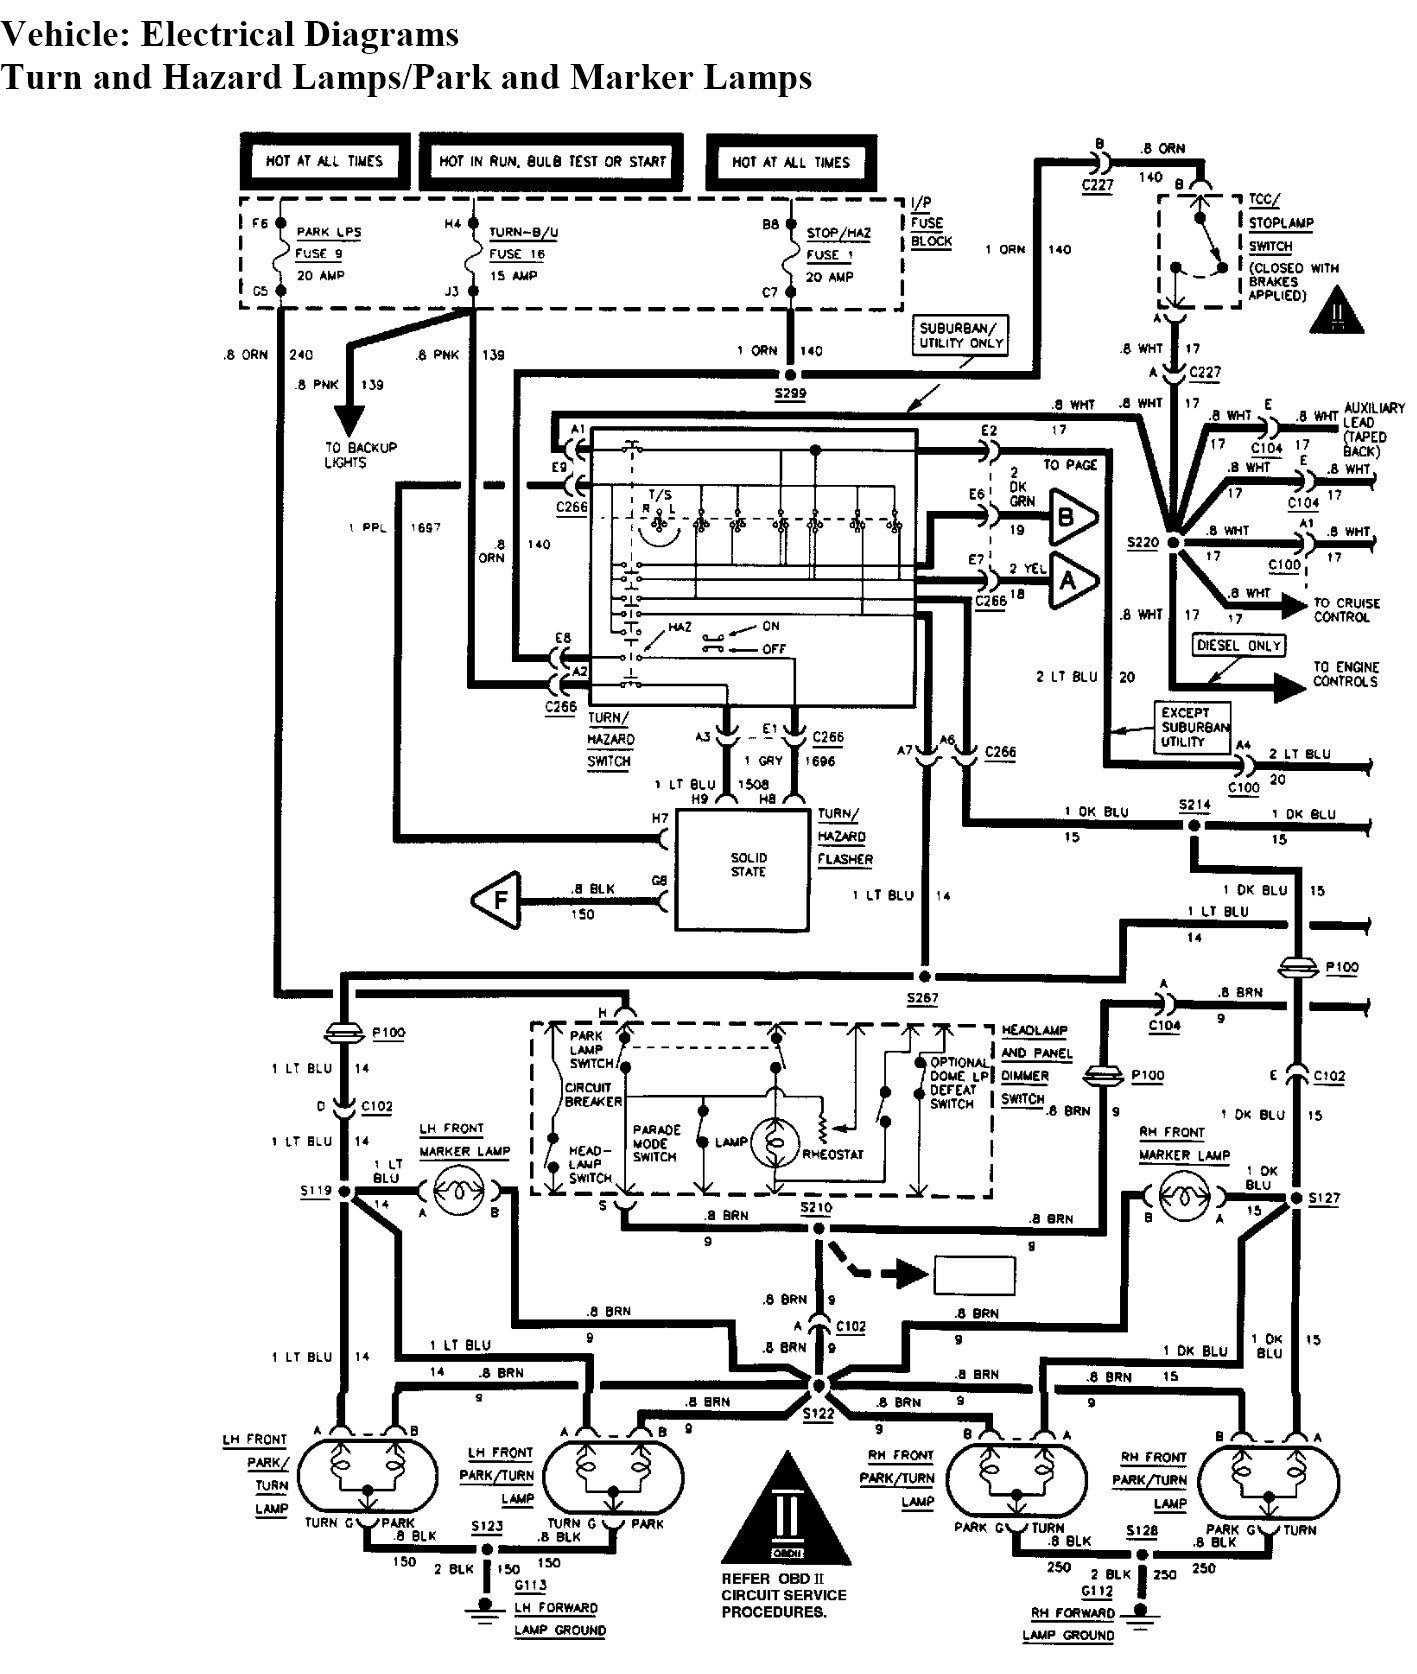 1993 chevy suburban wiring diagram